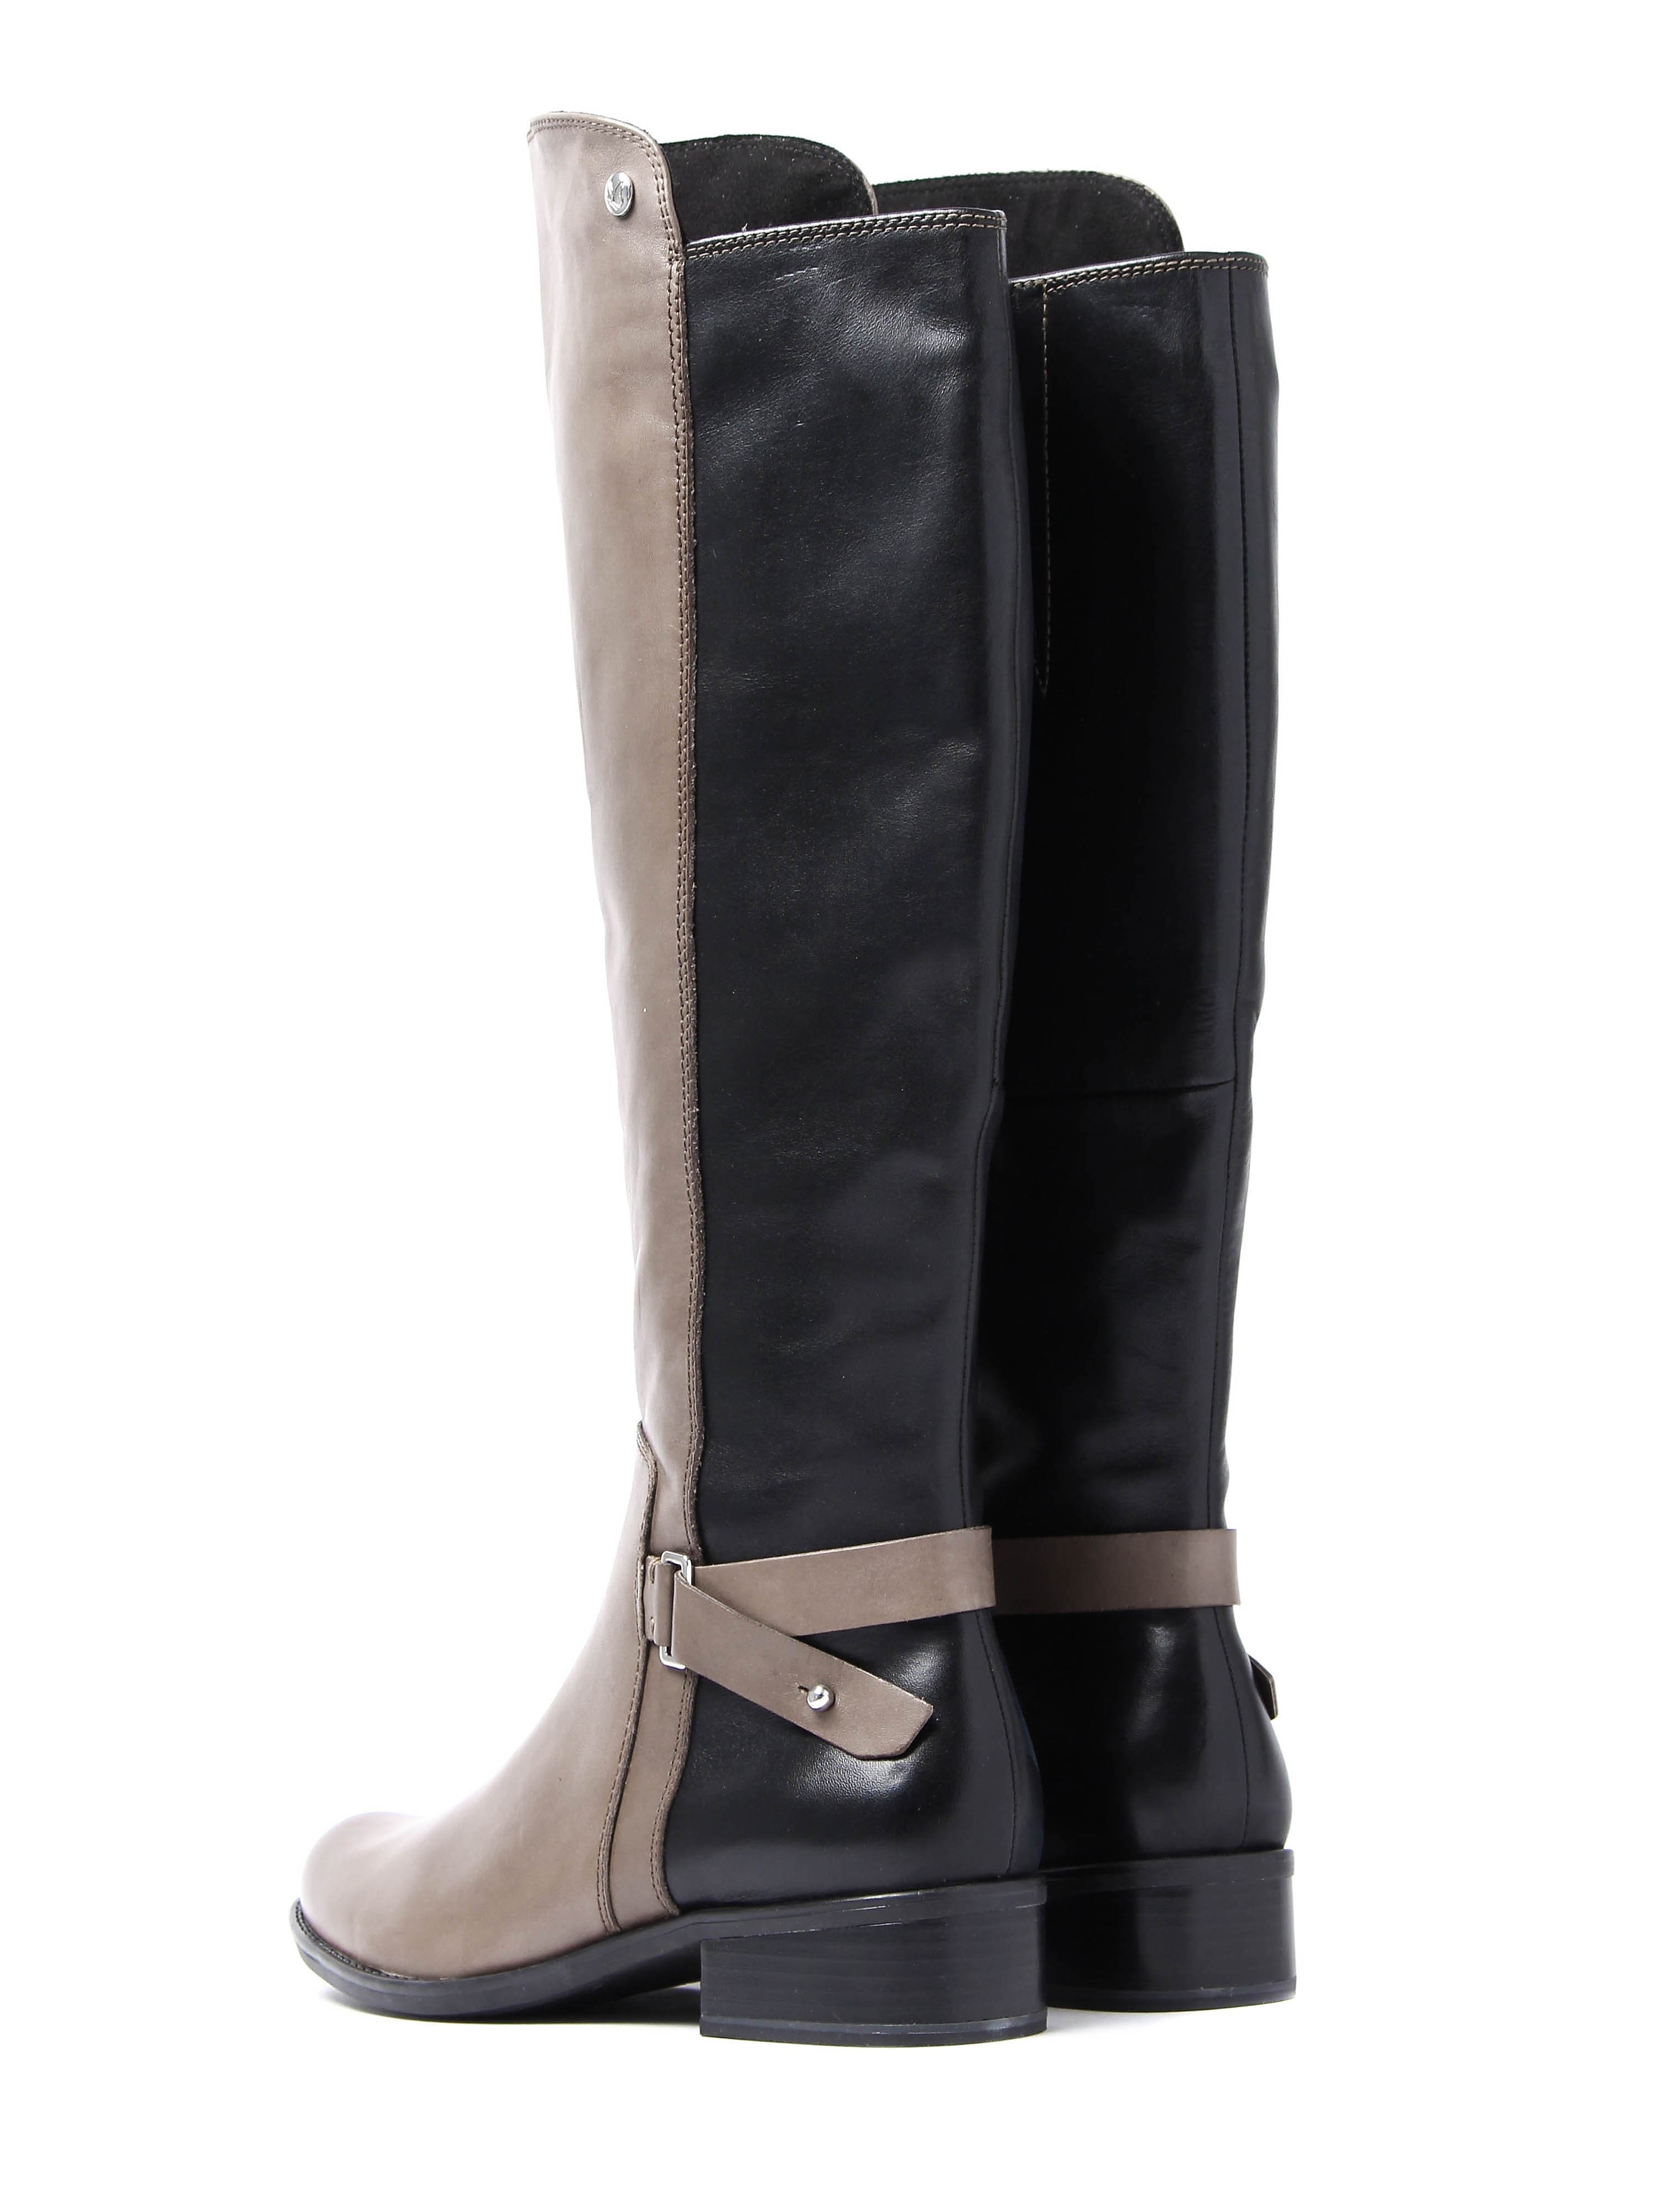 Caprice Women's Tall Combi Boots - Taupe Leather